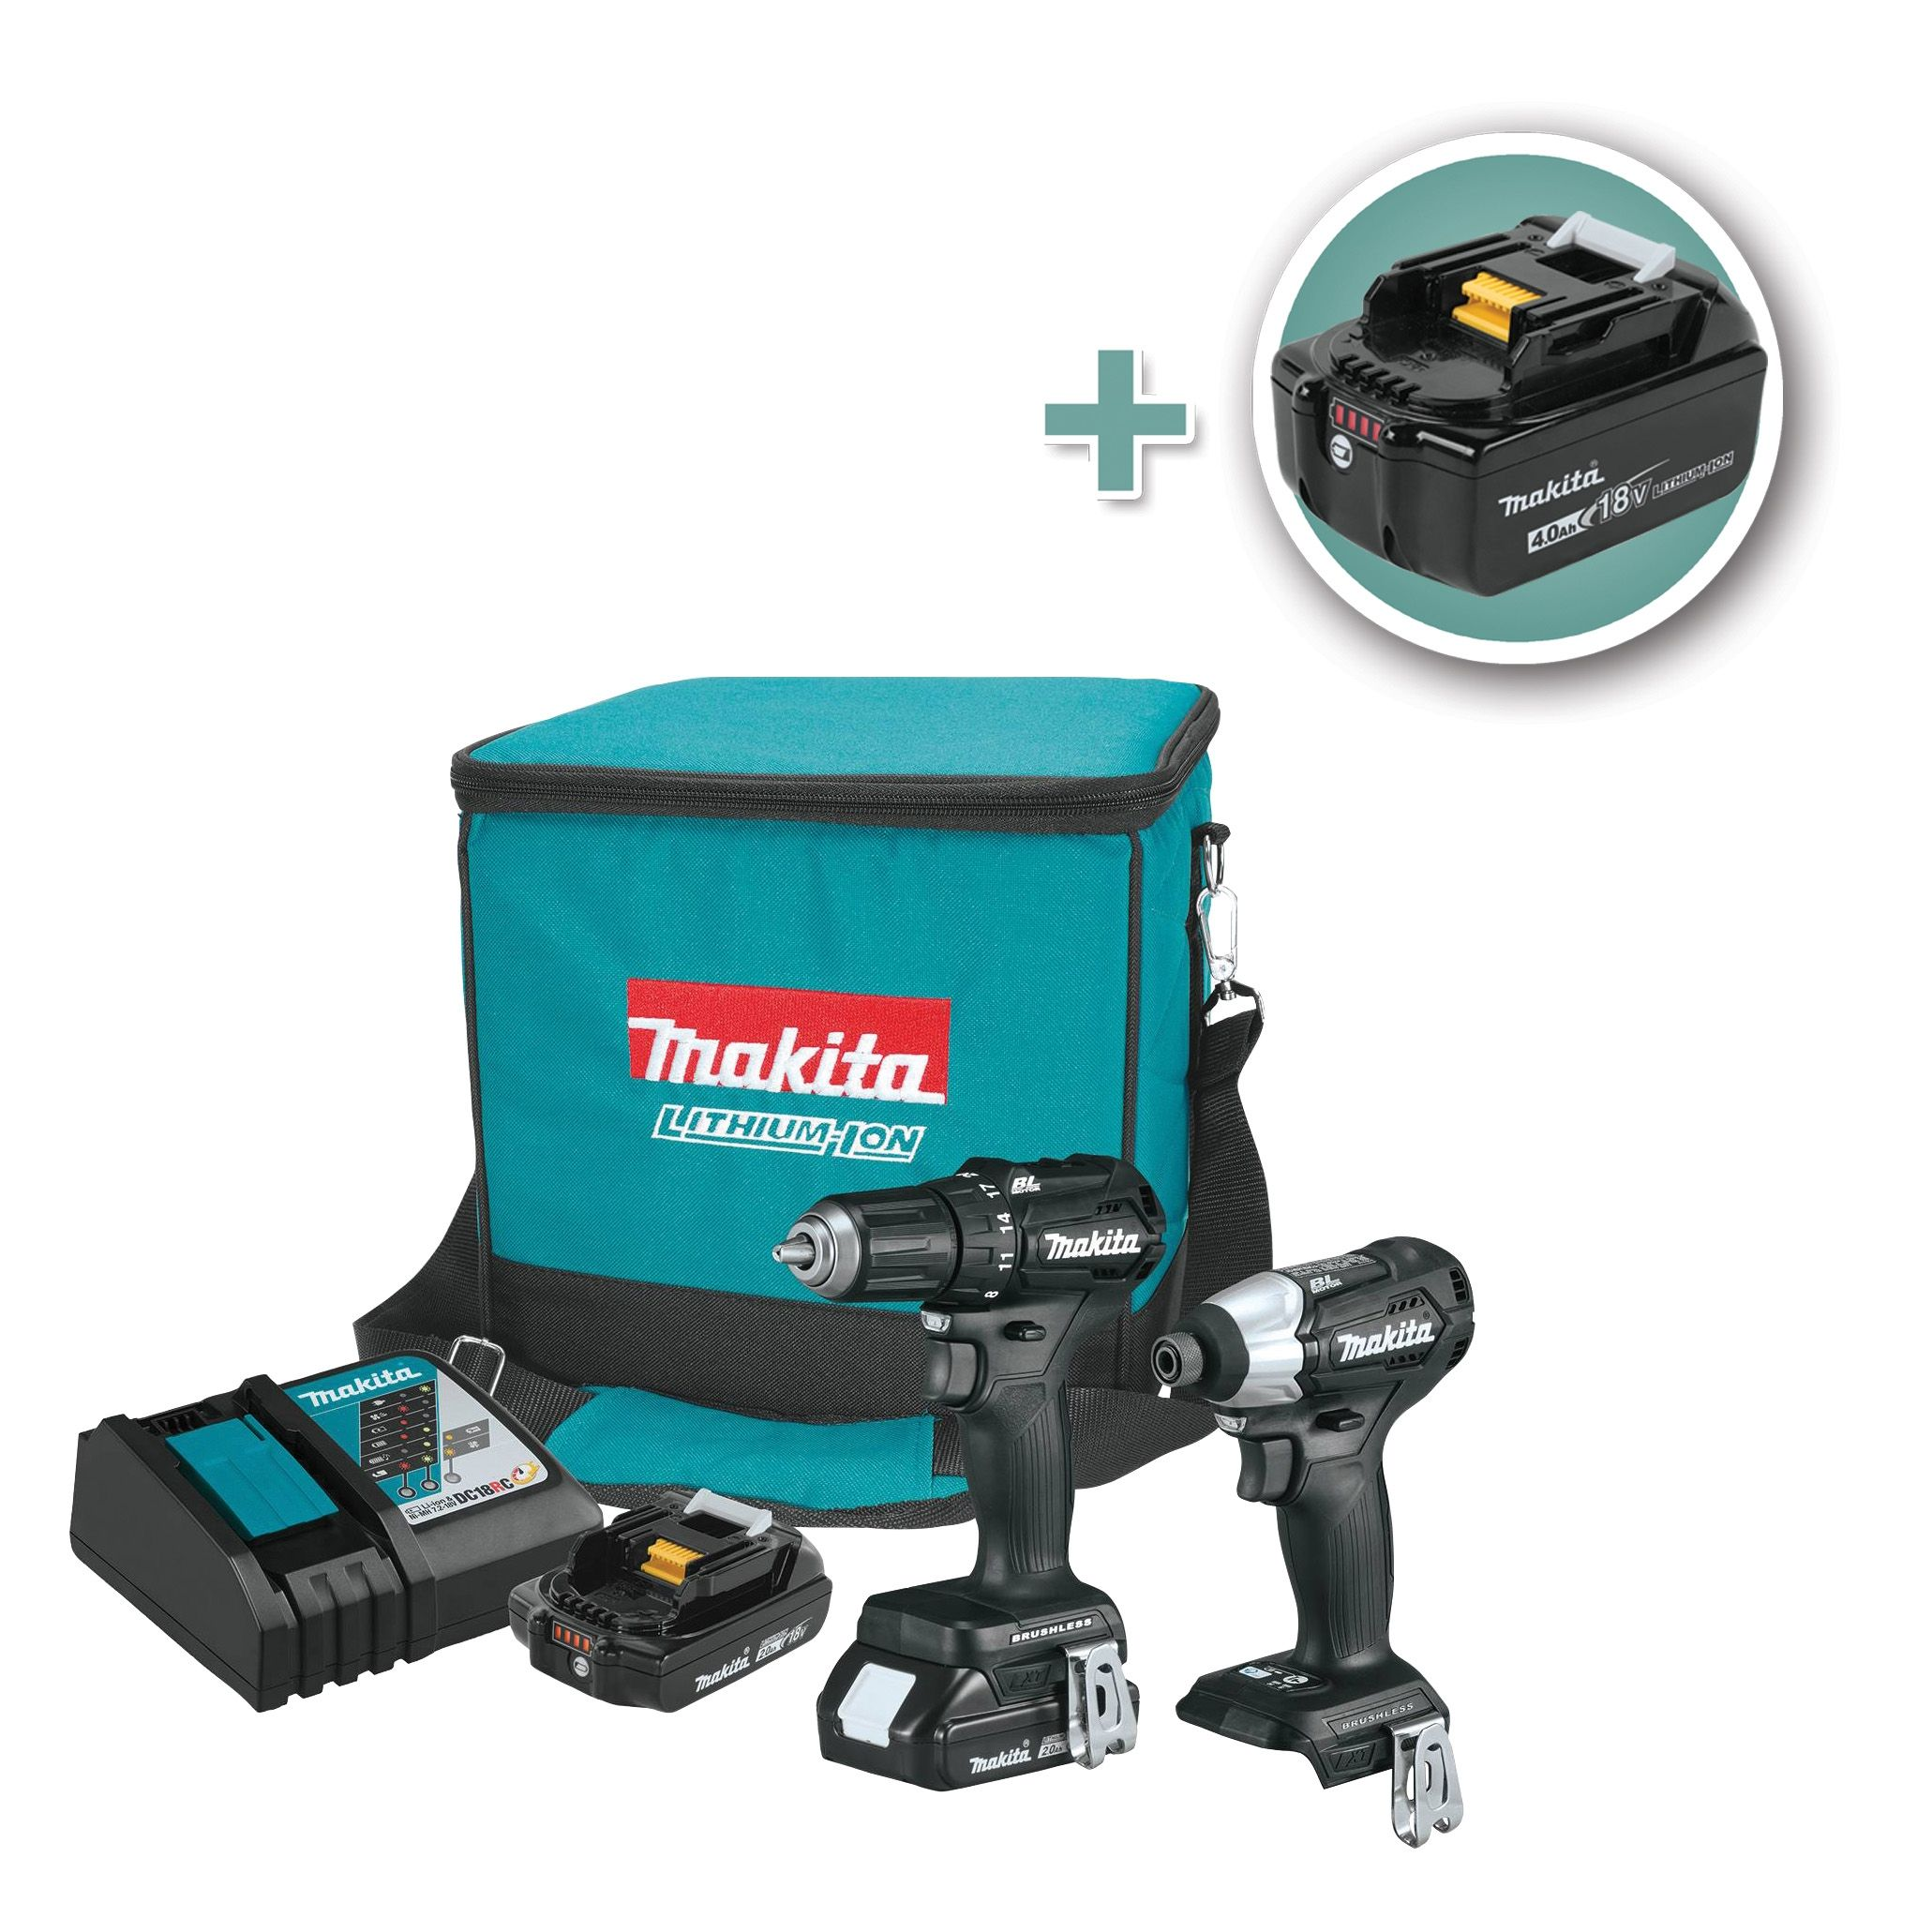 1d6184613b3 Makita CX200RB 18V LXT Lithium-Ion Sub-Compact Brushless Cordless 2-Piece  Combo. Tap to expand